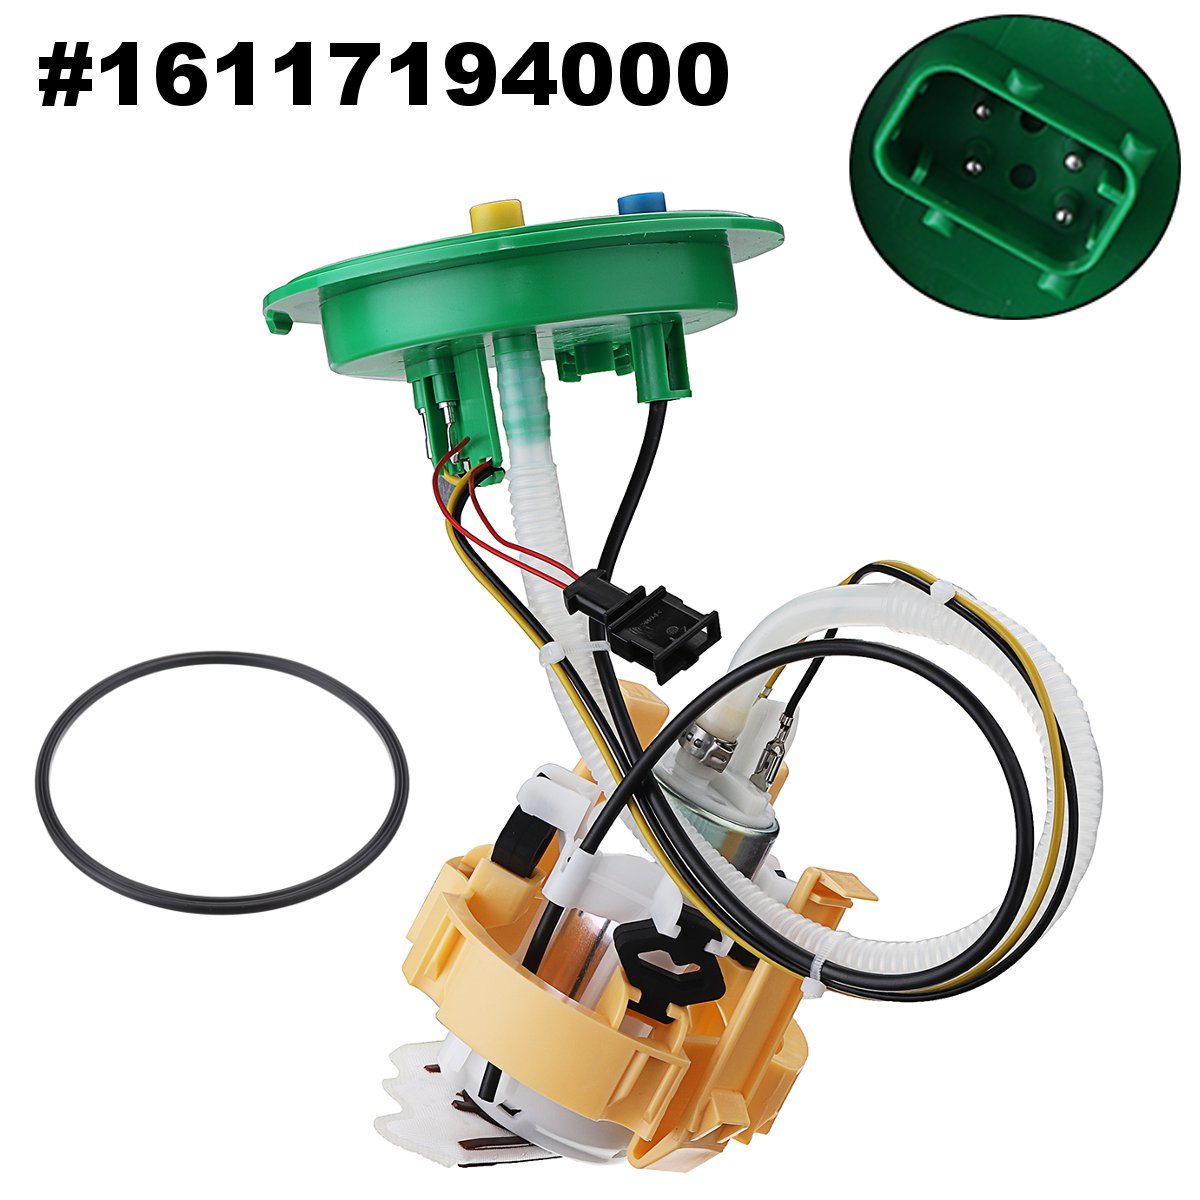 16117194000 Car Vehicle Fuel Pump Assembly for BMW 745Li 745i 2002 2003 2004 2005 for BMW 750Li 750i 2006 2007 2008 pair car front headlamp clear lens headlight plastic shell clear cover for bmw e90 e91 2004 2005 2006 2007